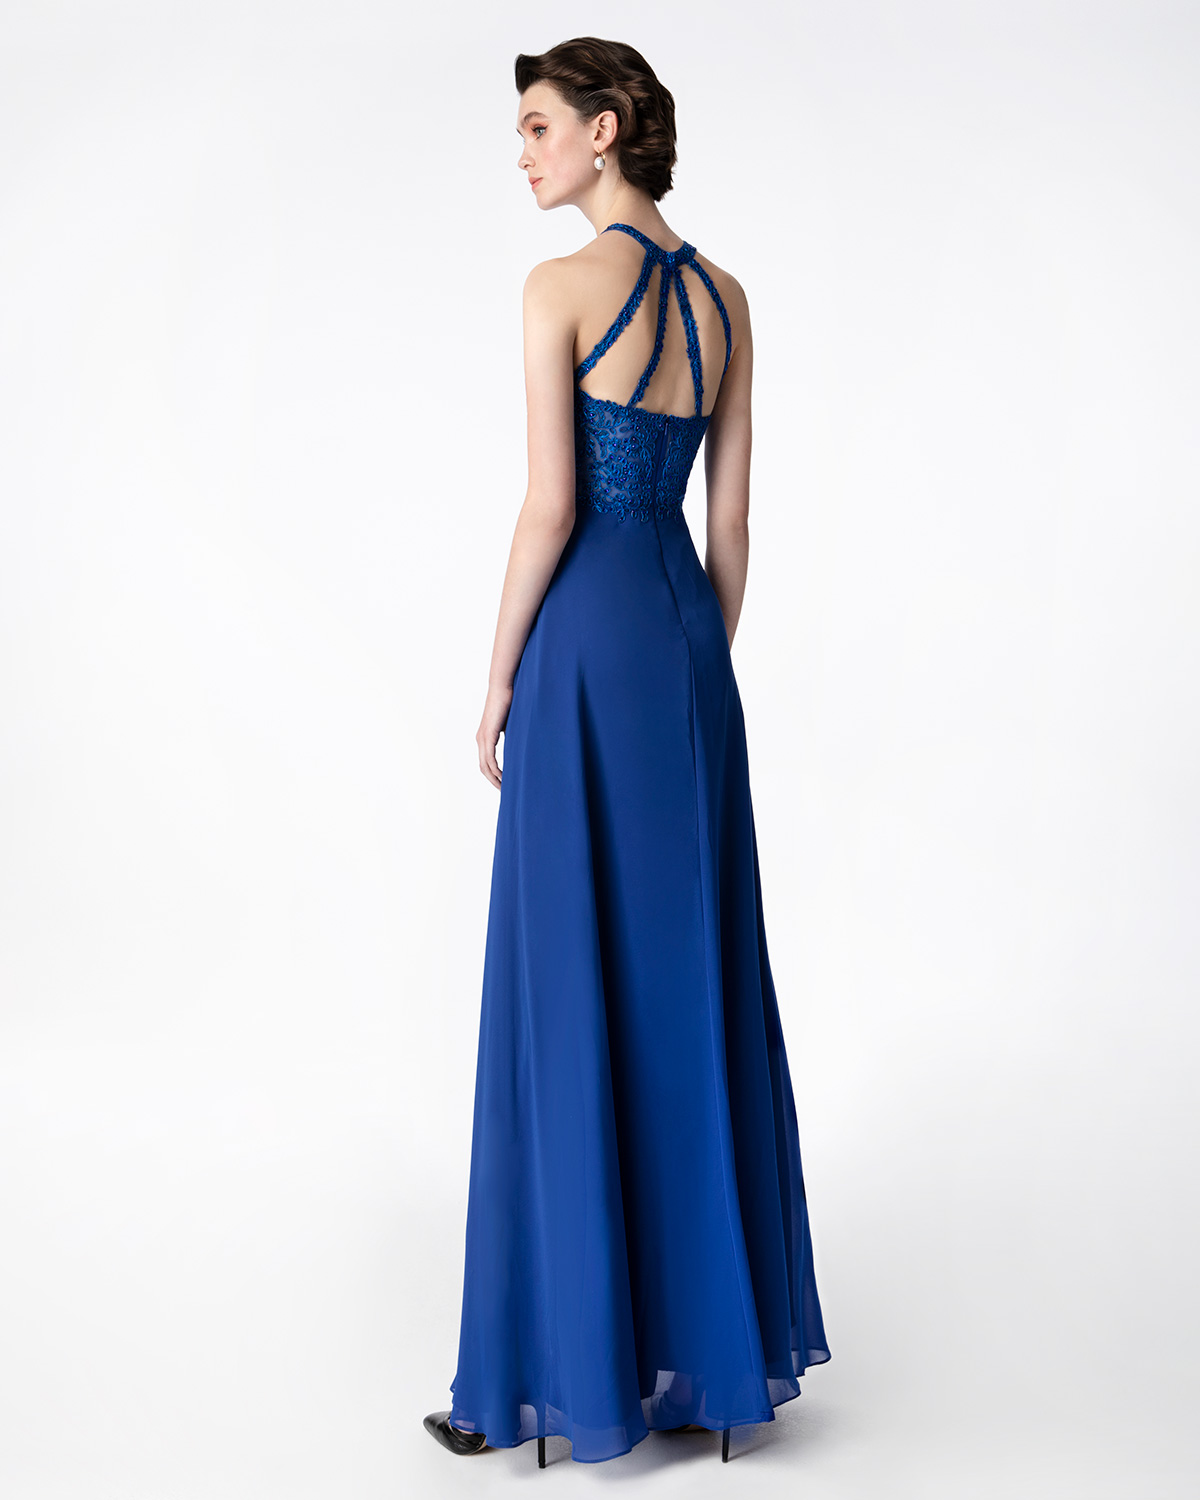 Cocktail Dresses / Cocktail long dress with beaded top and chiffon skirt